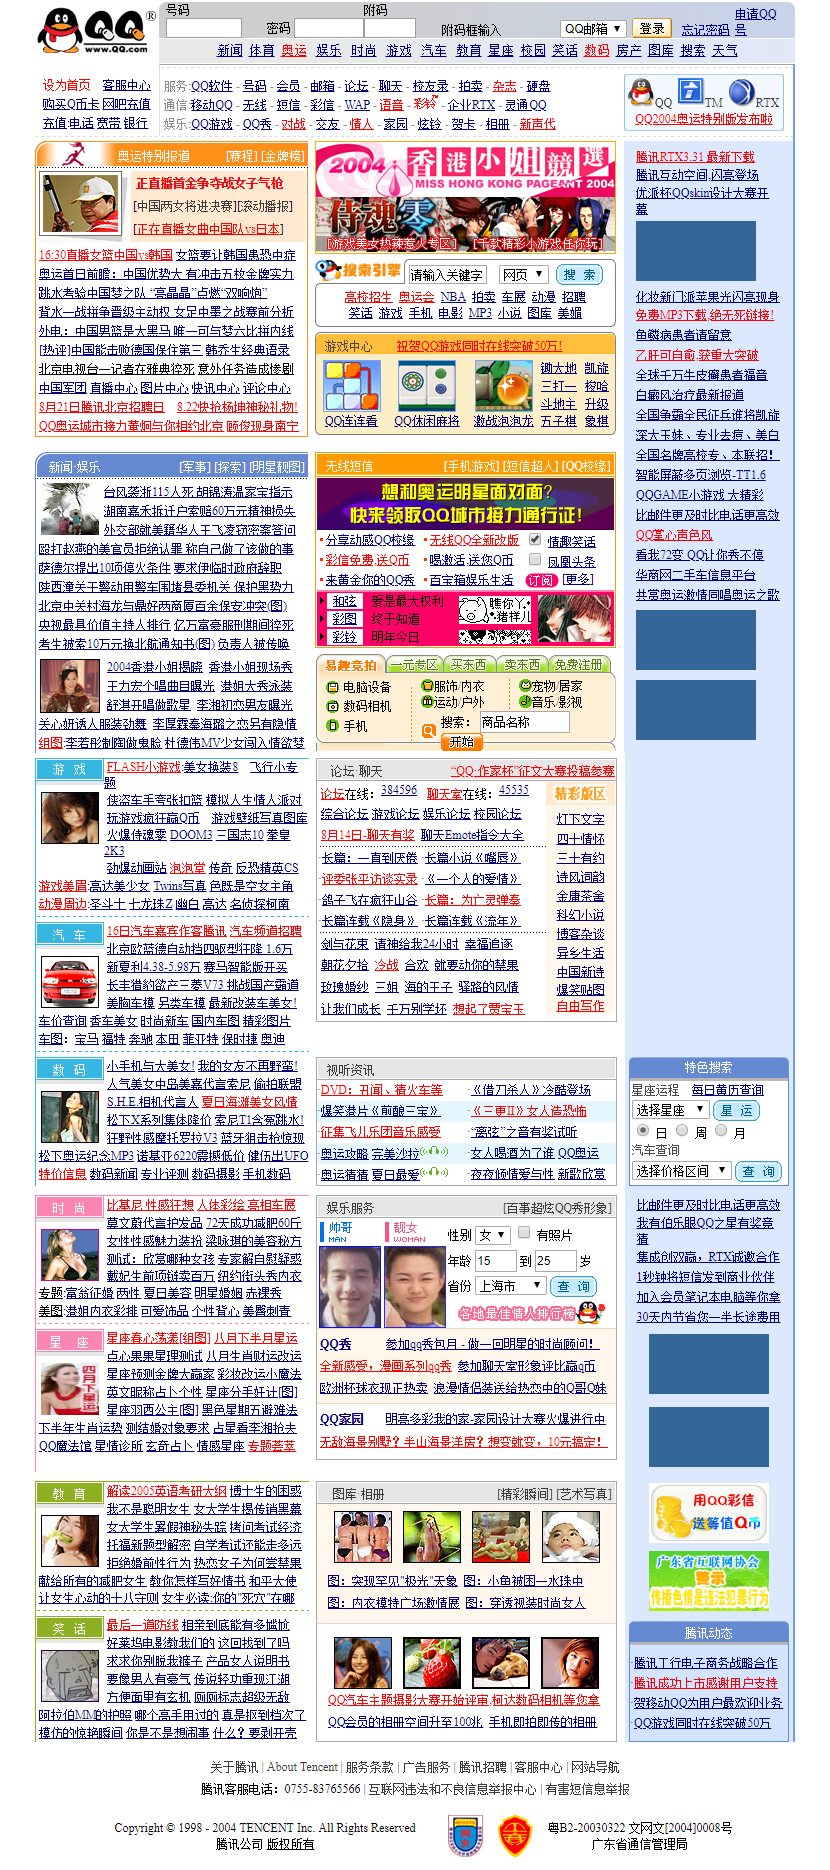 Tencent QQ in 2004